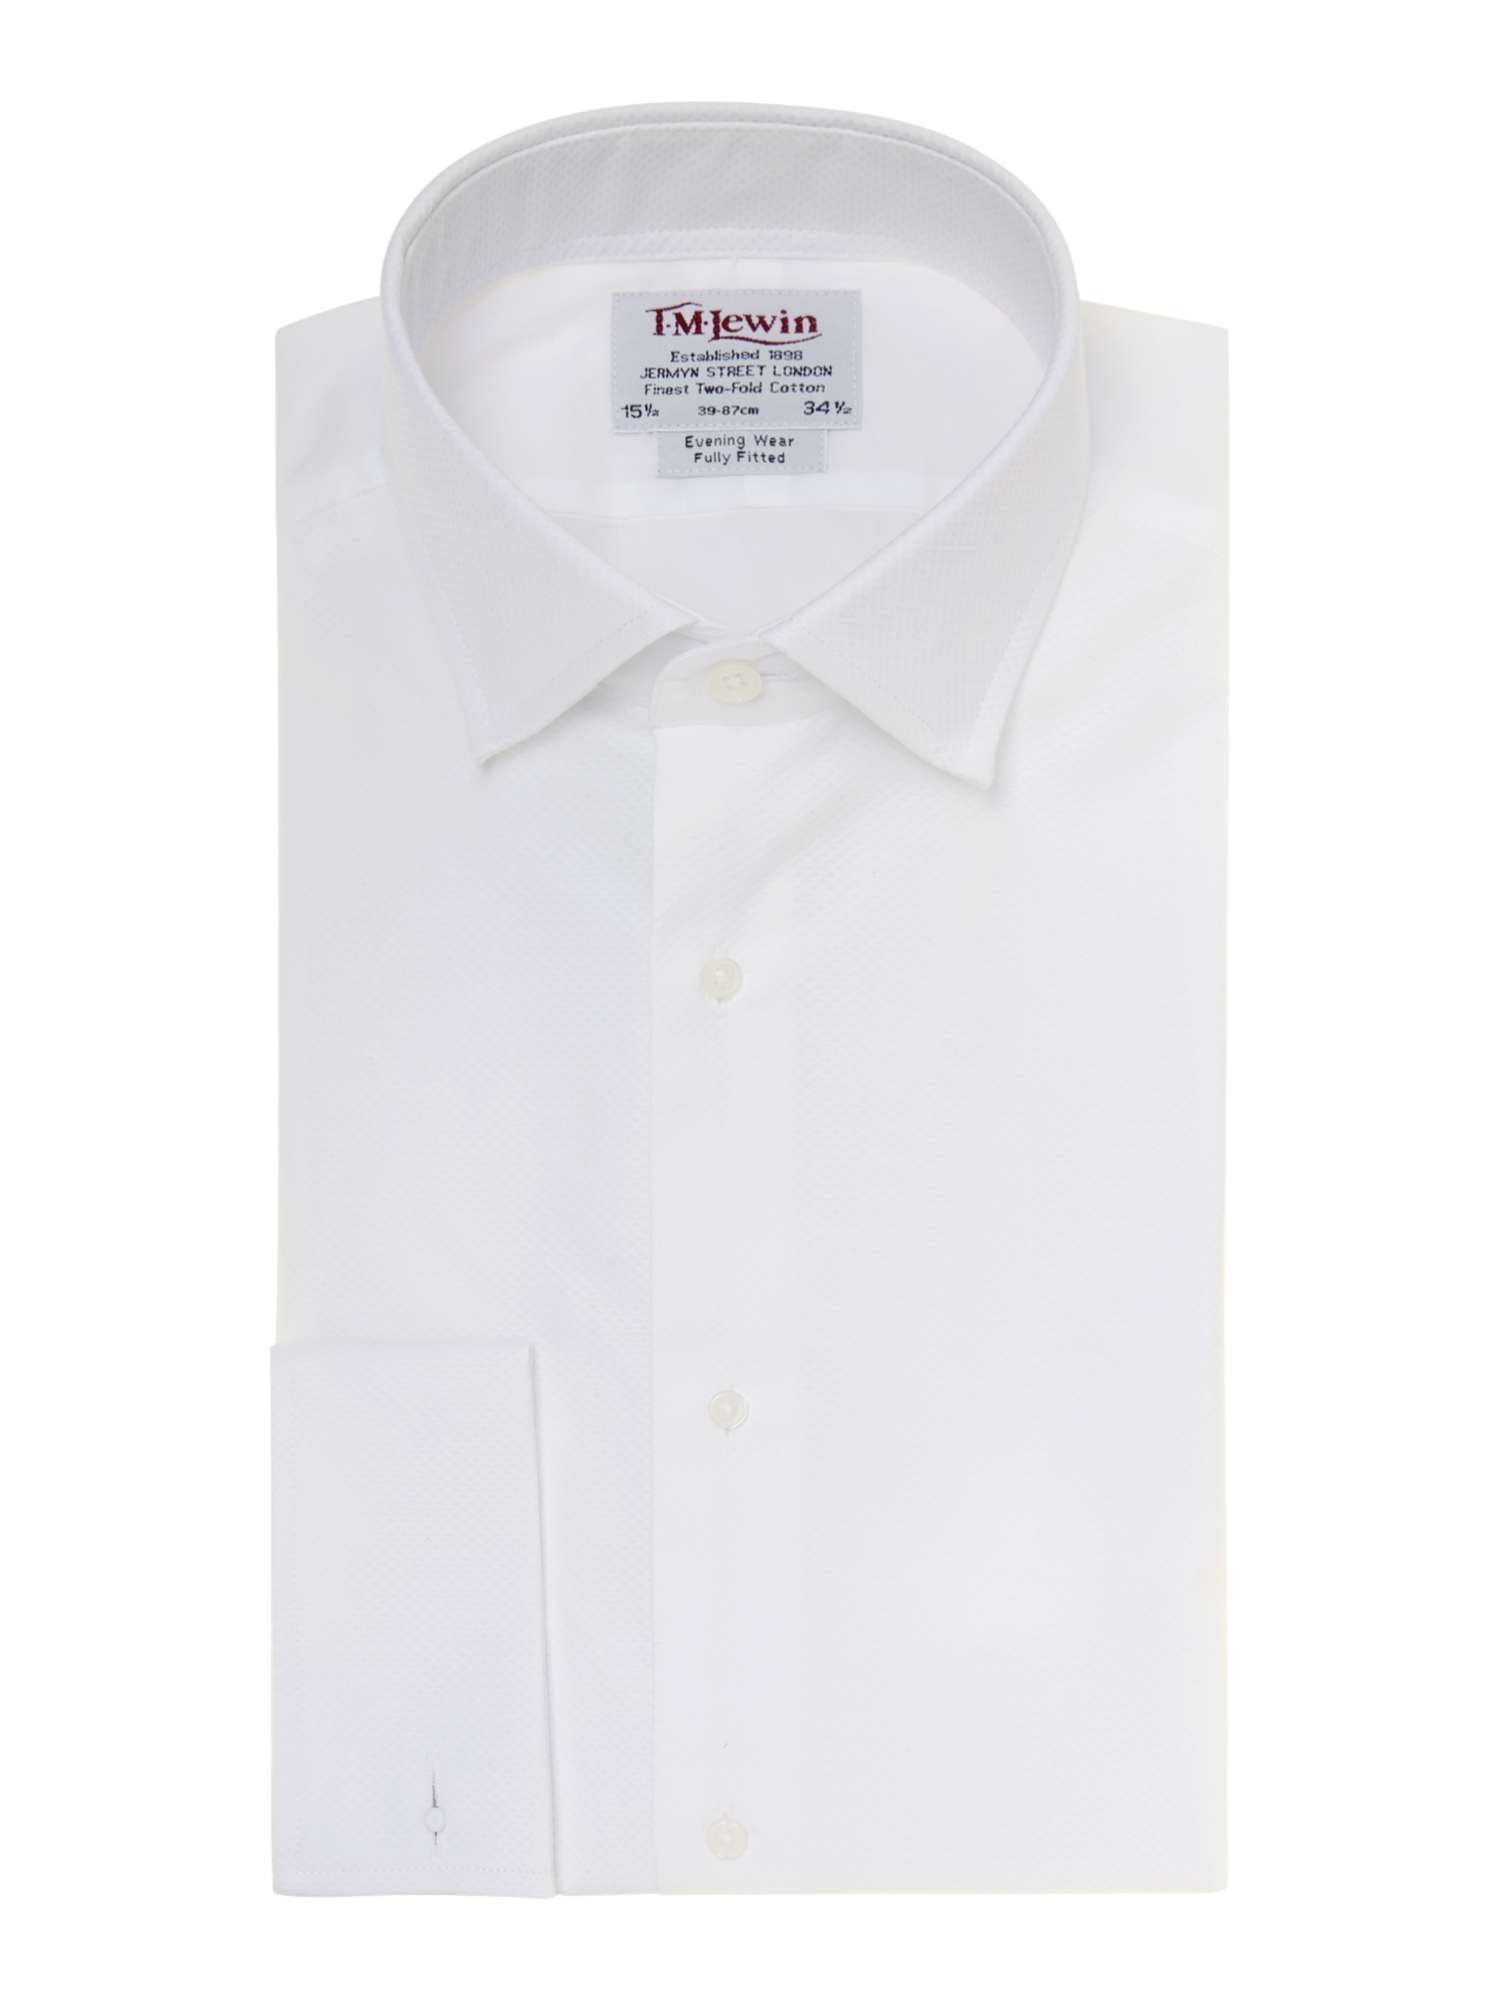 Tm Lewin Marcella Plain Fully Fitted Dress Shirt House Of Fraser